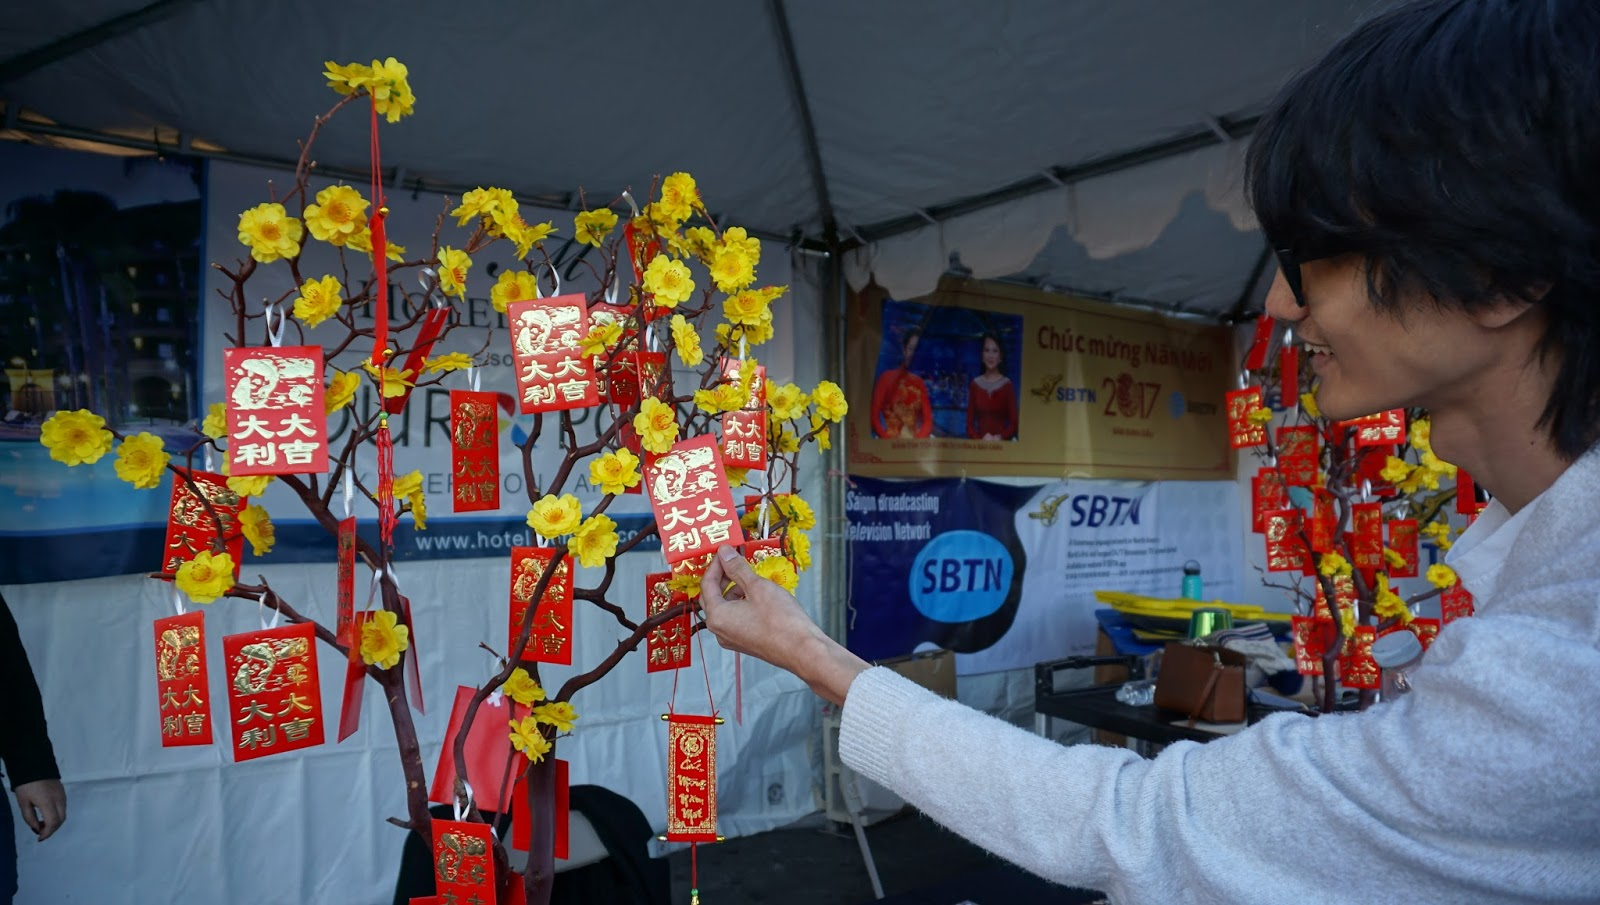 [GIVEAWAY] Celebrate the Year of the Dog @ The UVSA Tet Festival in Costa Mesa